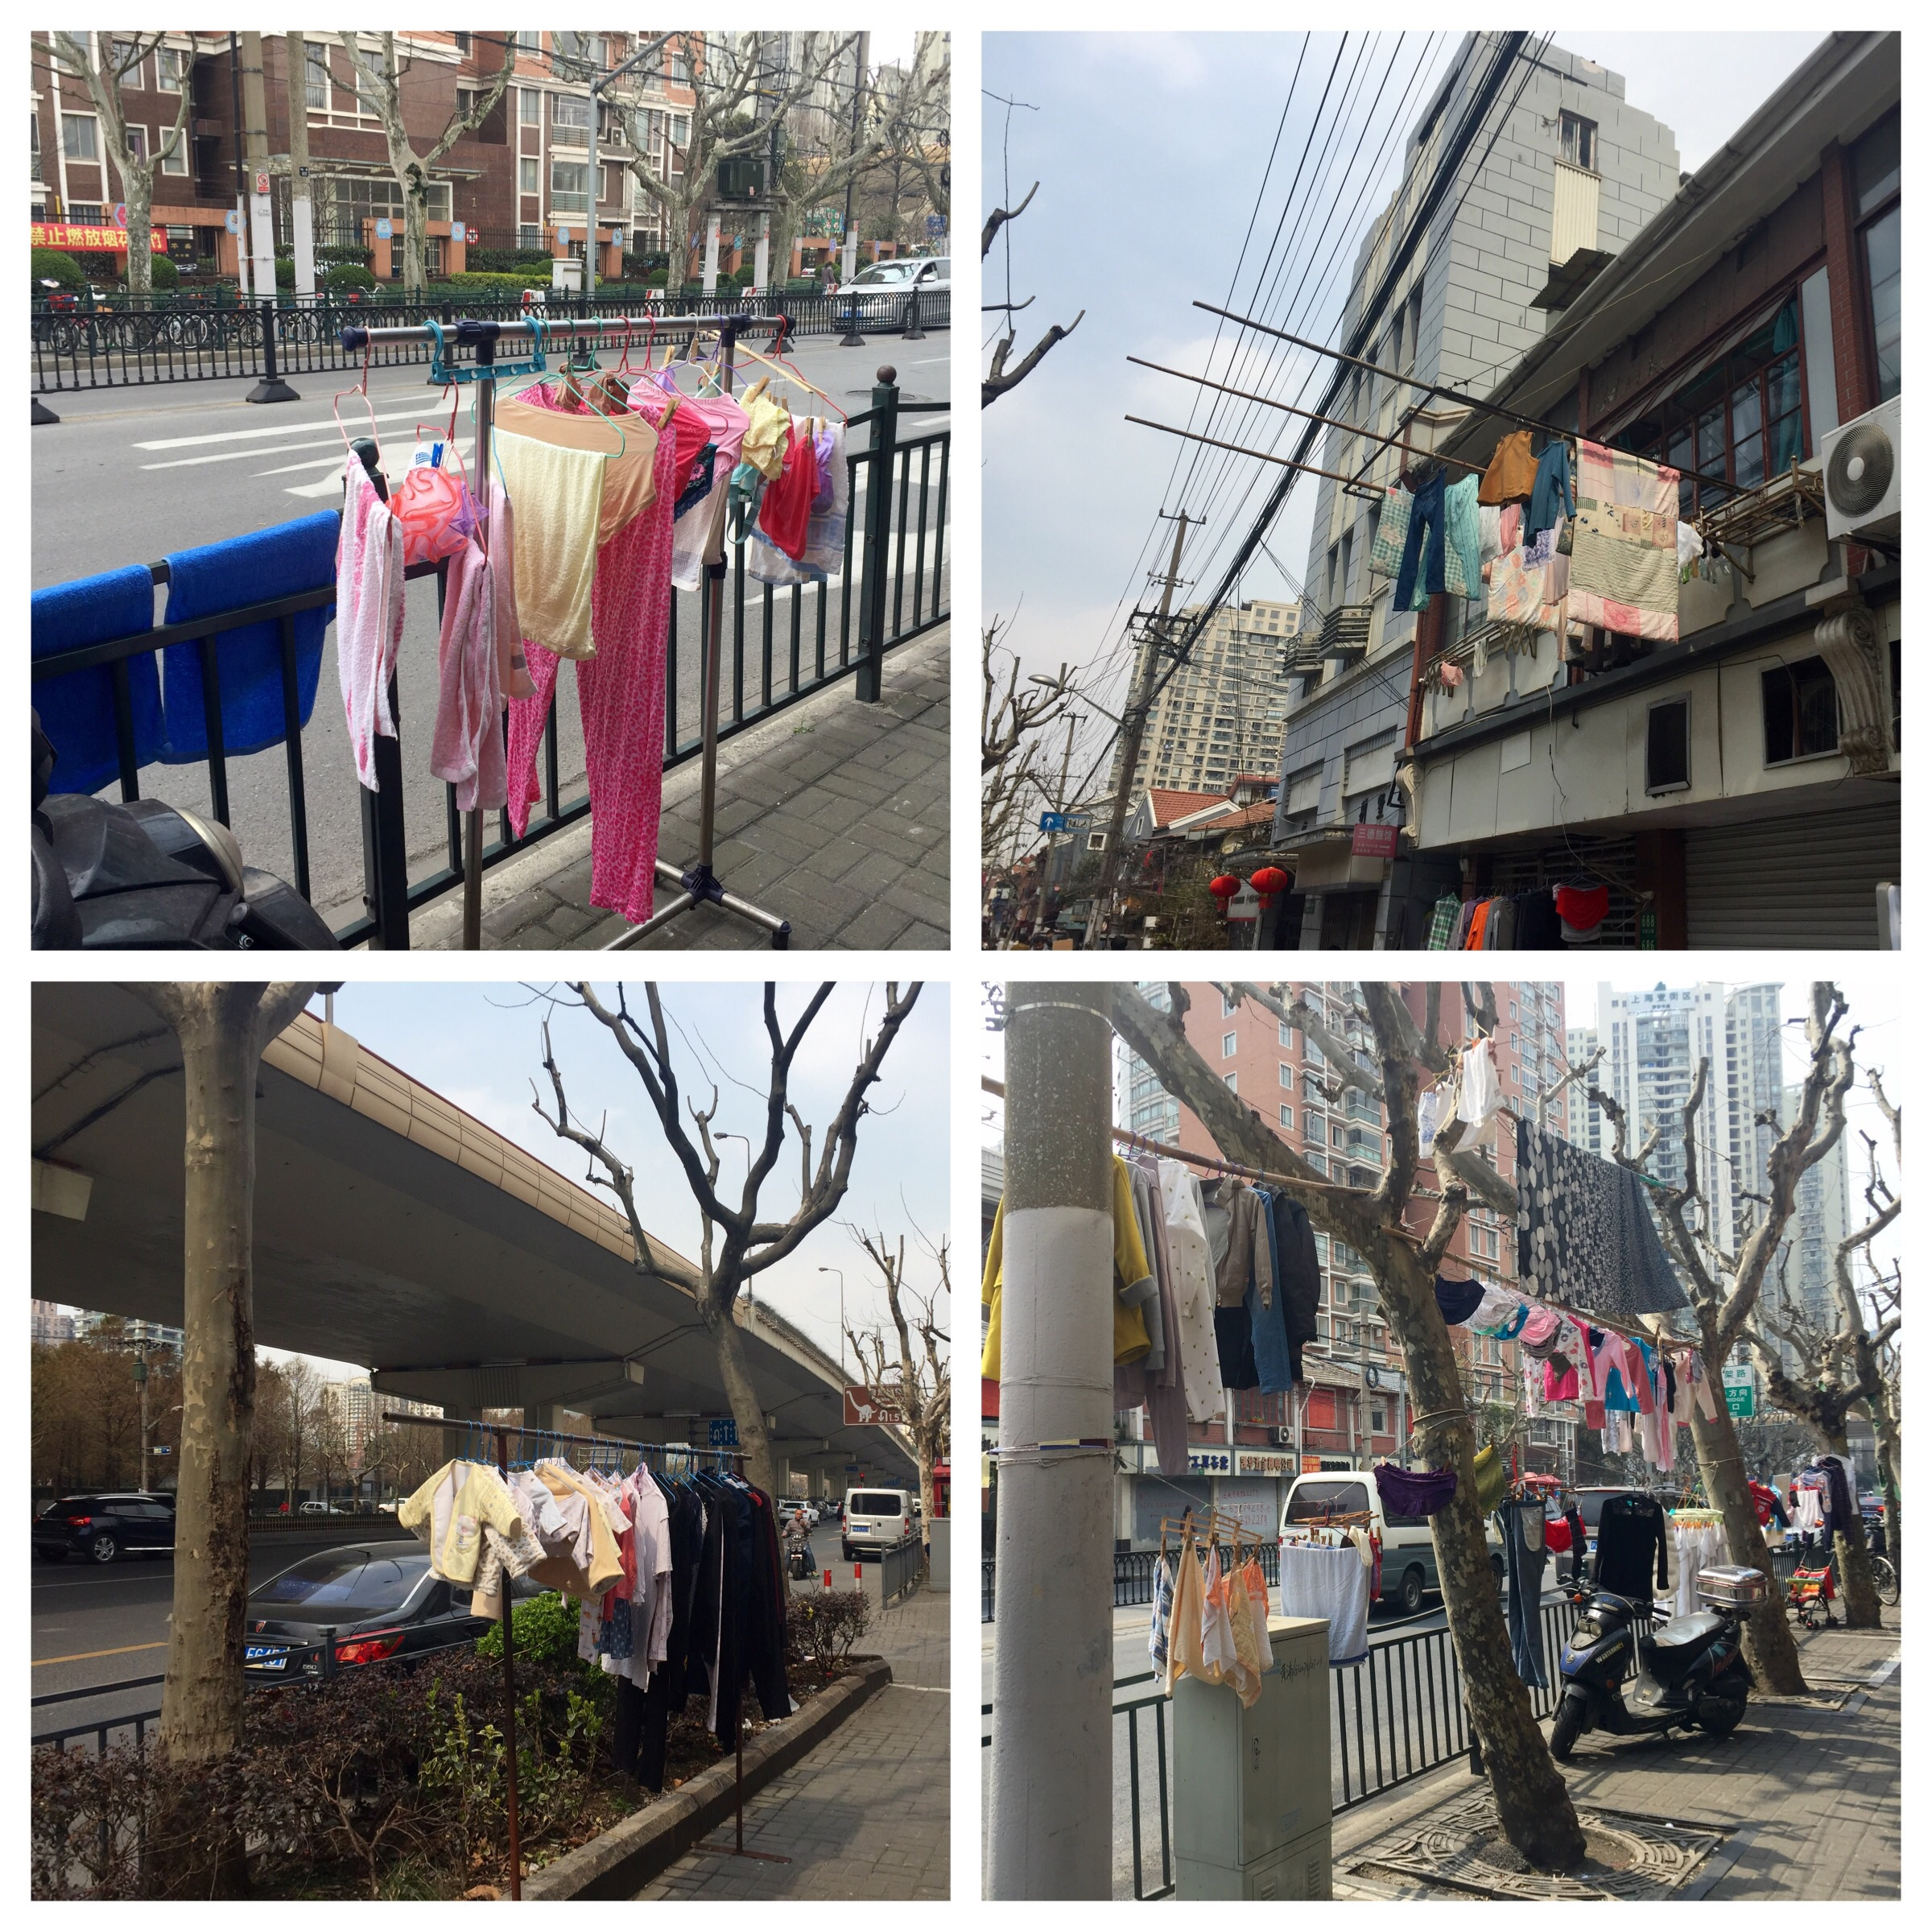 Street laundry in downtown.